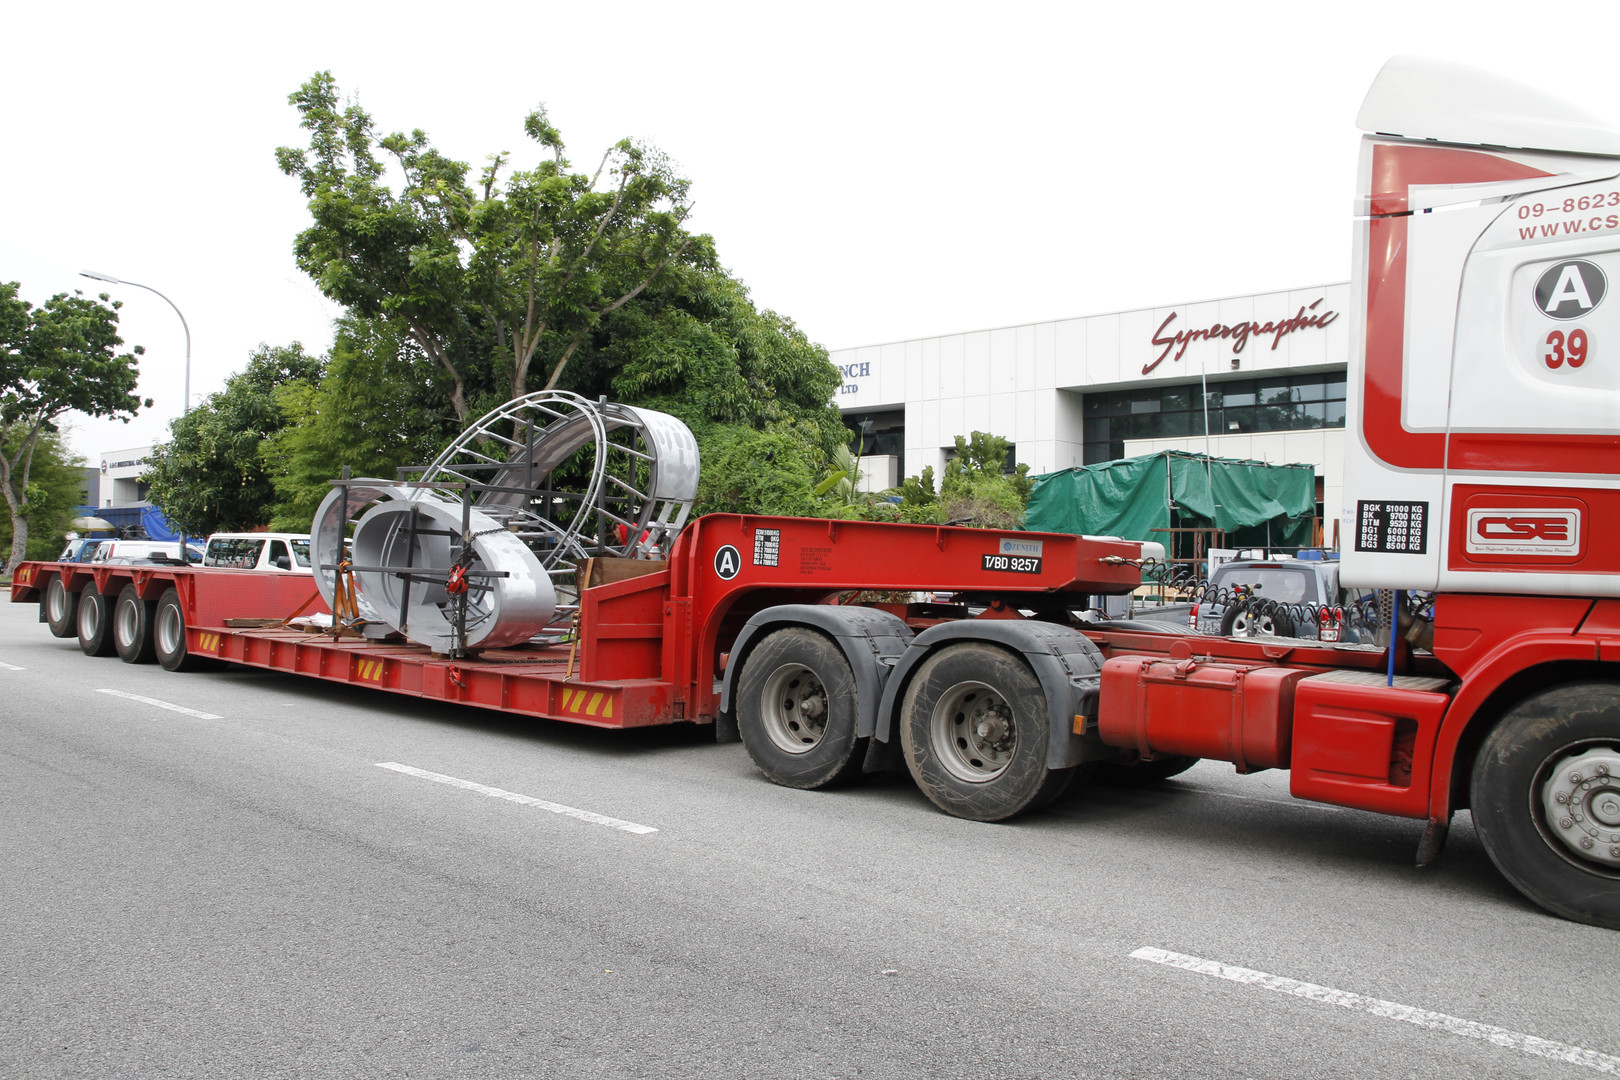 Transport of Sculpture from Workshop to Site